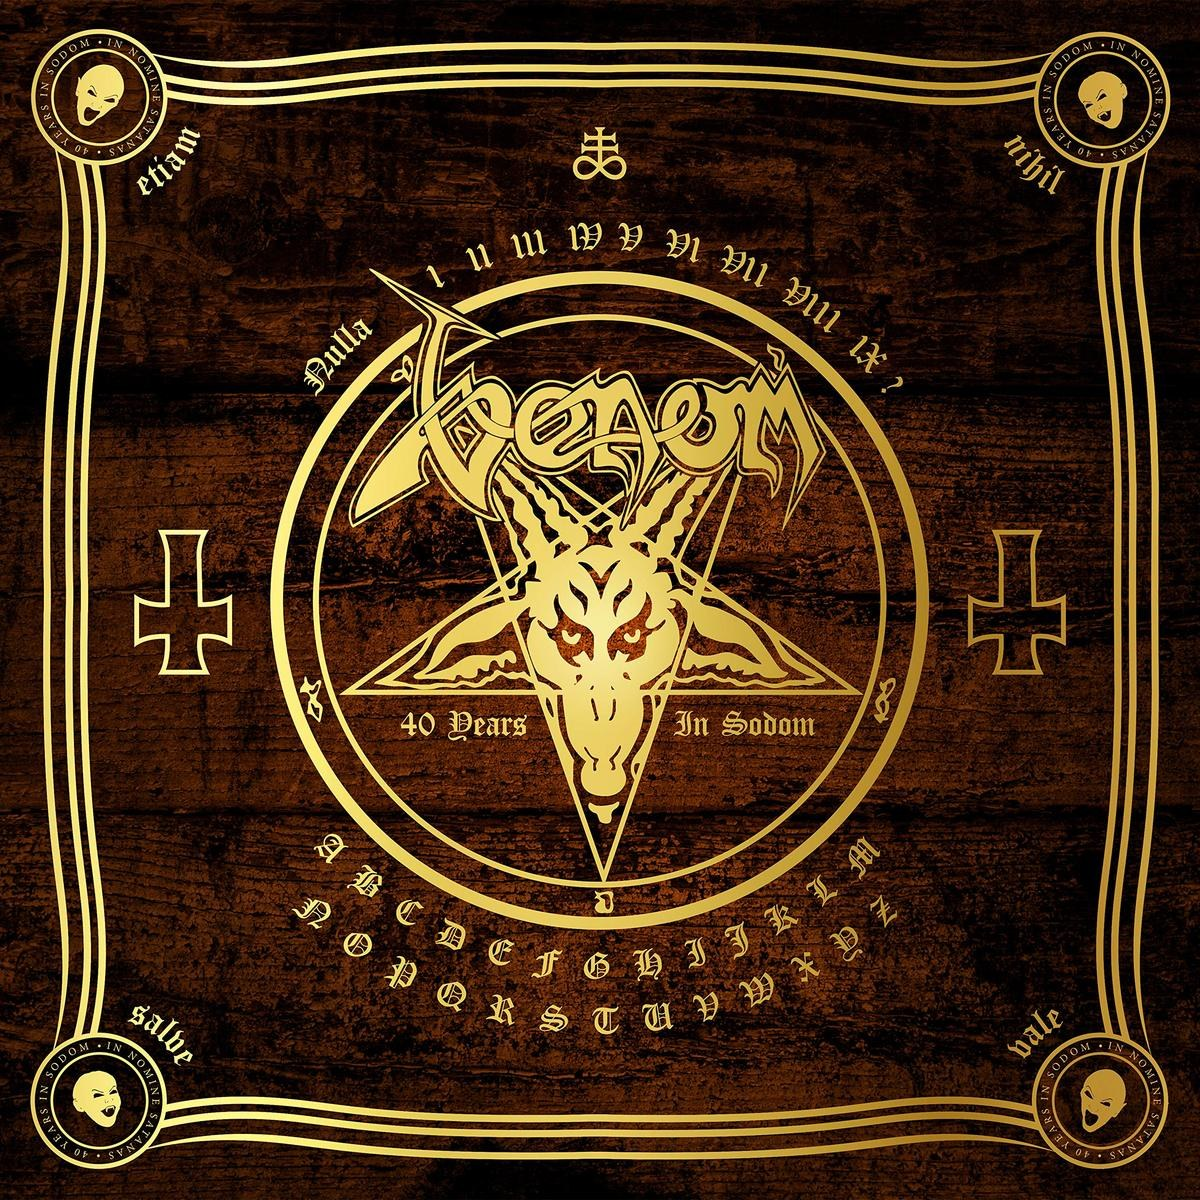 Review for Venom - In Nomine Satanas - The Neat Anthology (40 Years in Sodom)